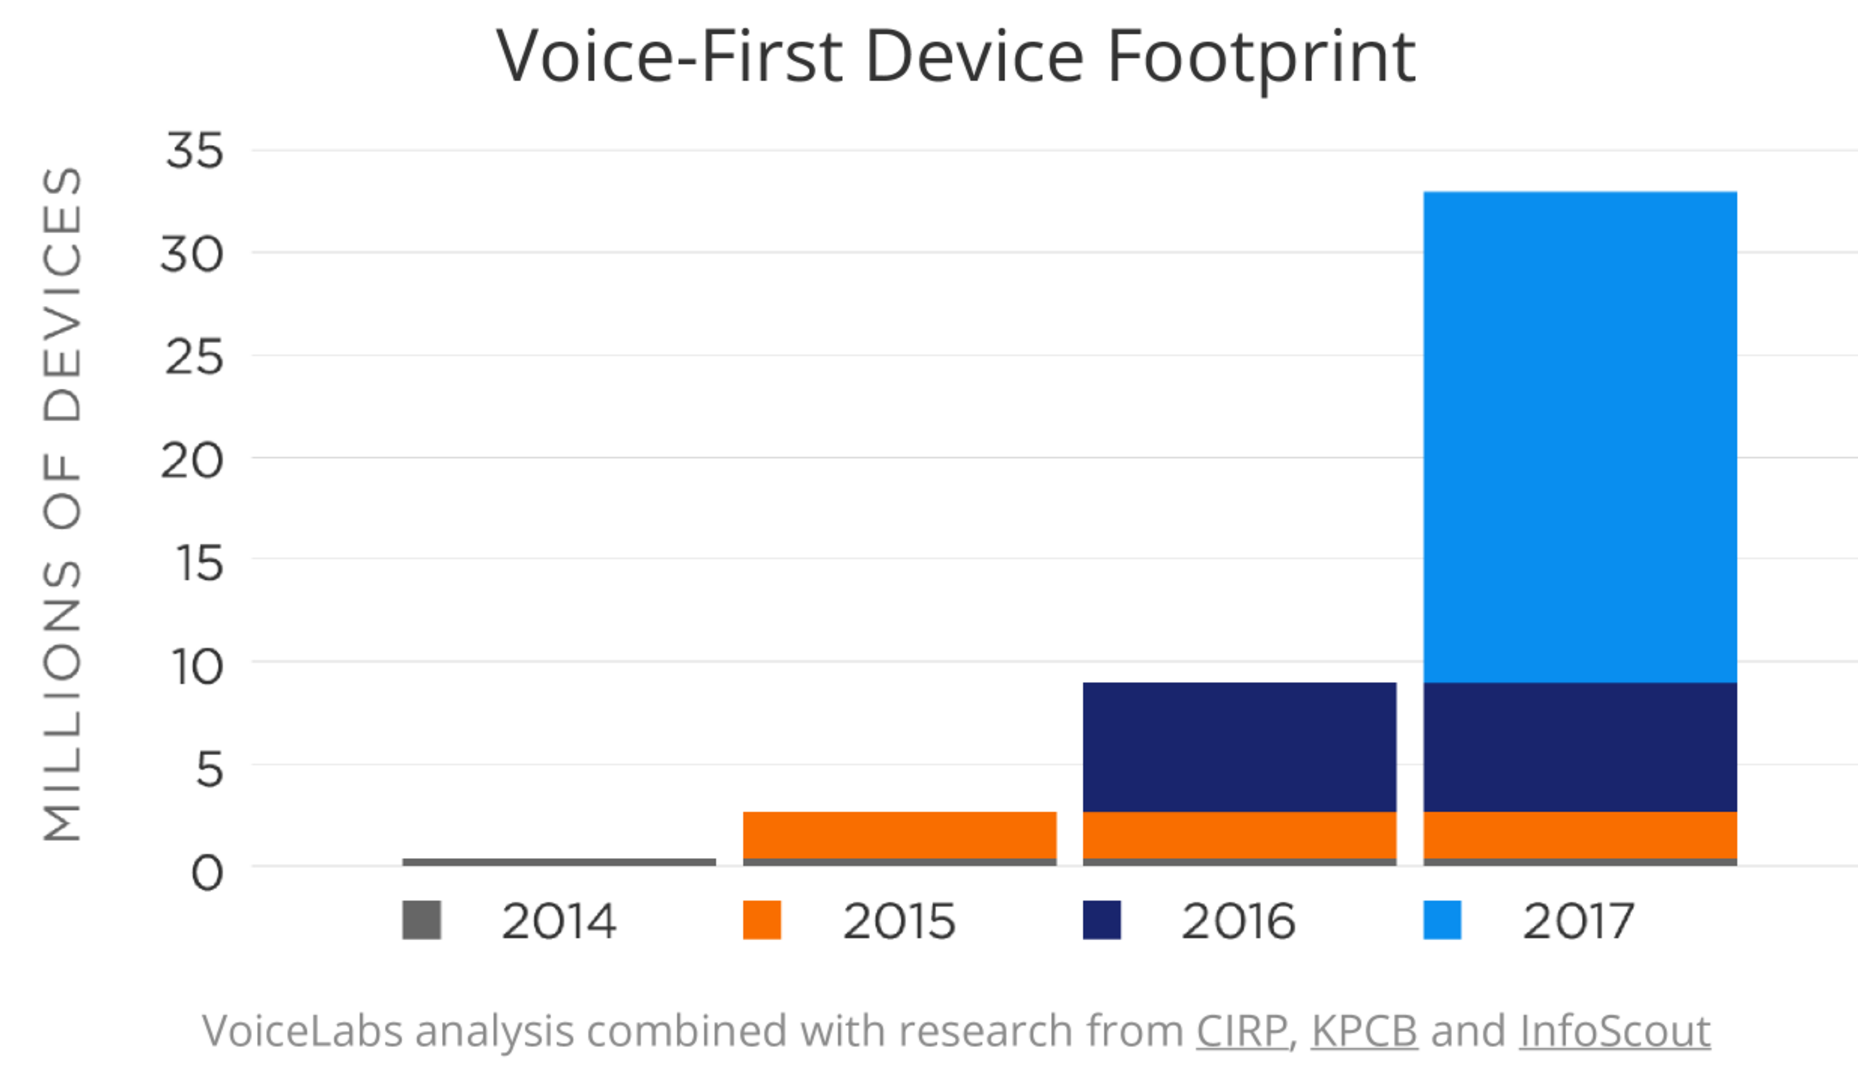 Voice-first device footprint